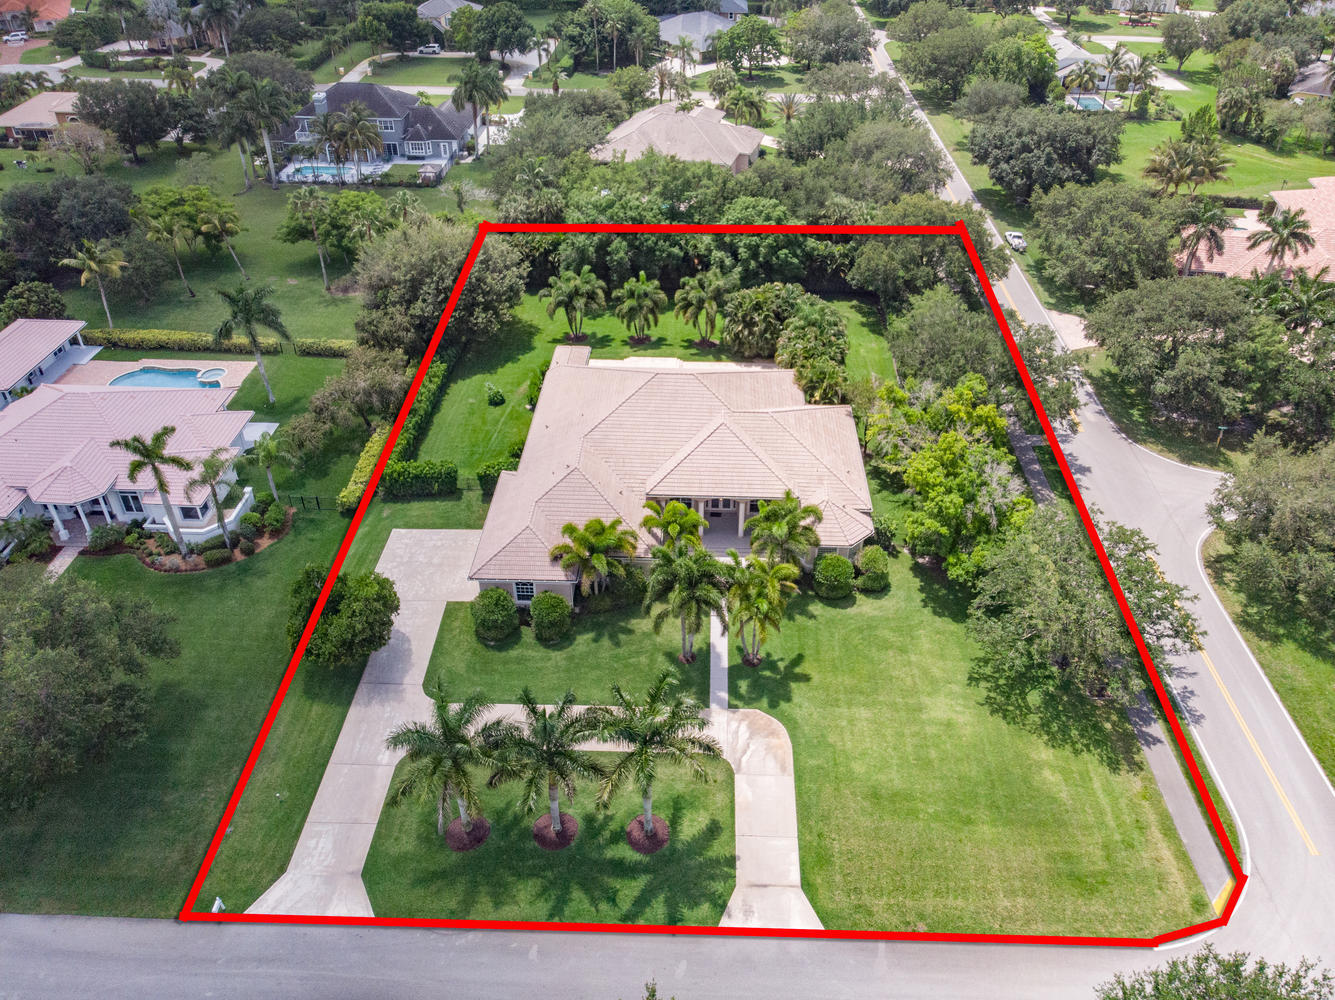 15570 De Havilland Court, Wellington, Florida 33414, 4 Bedrooms Bedrooms, ,4 BathroomsBathrooms,Single Family,For Sale,De Havilland,RX-10531062